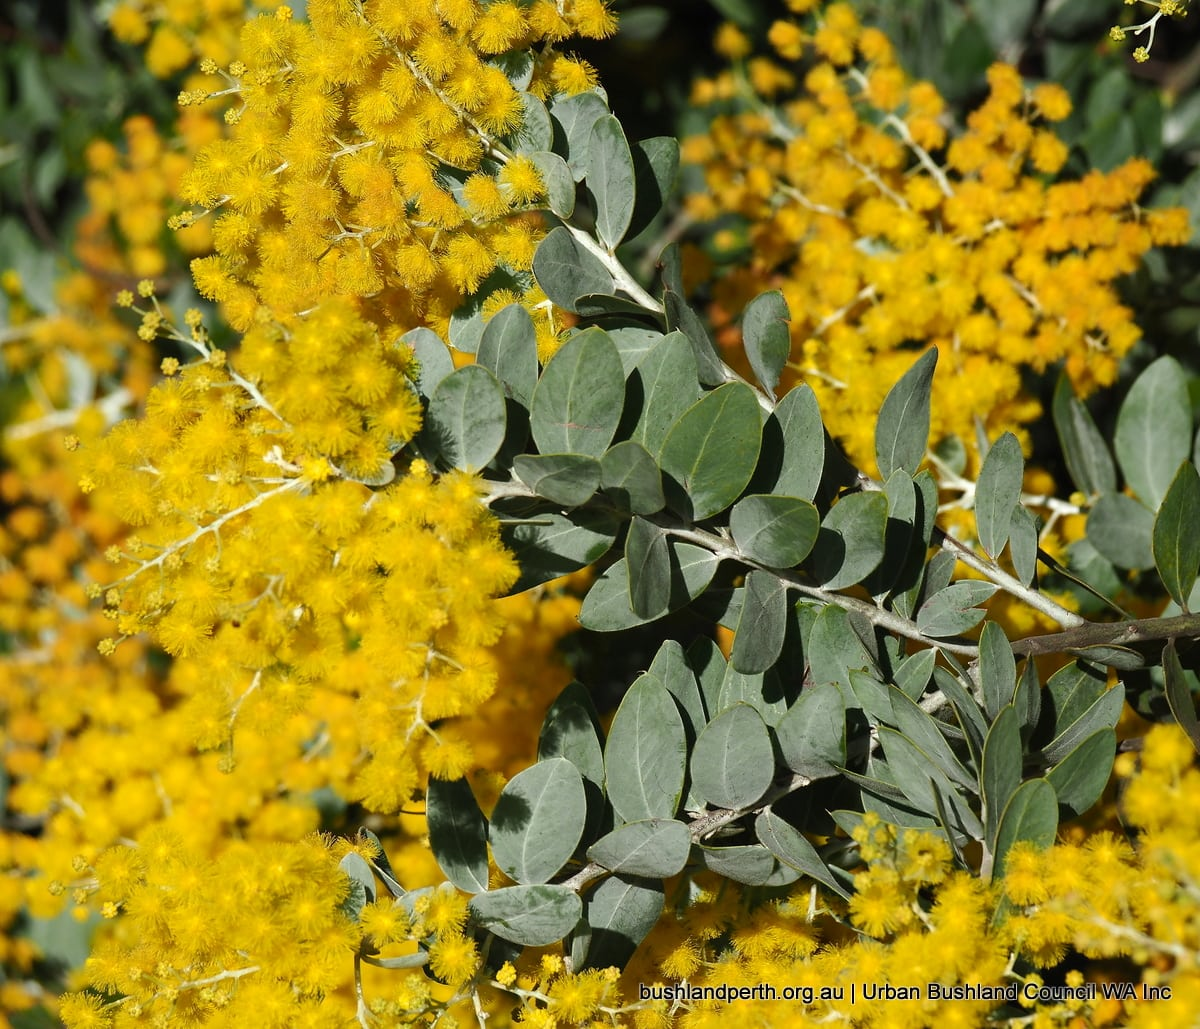 Queensland Silver Wattle Urban Bushland Council Wa